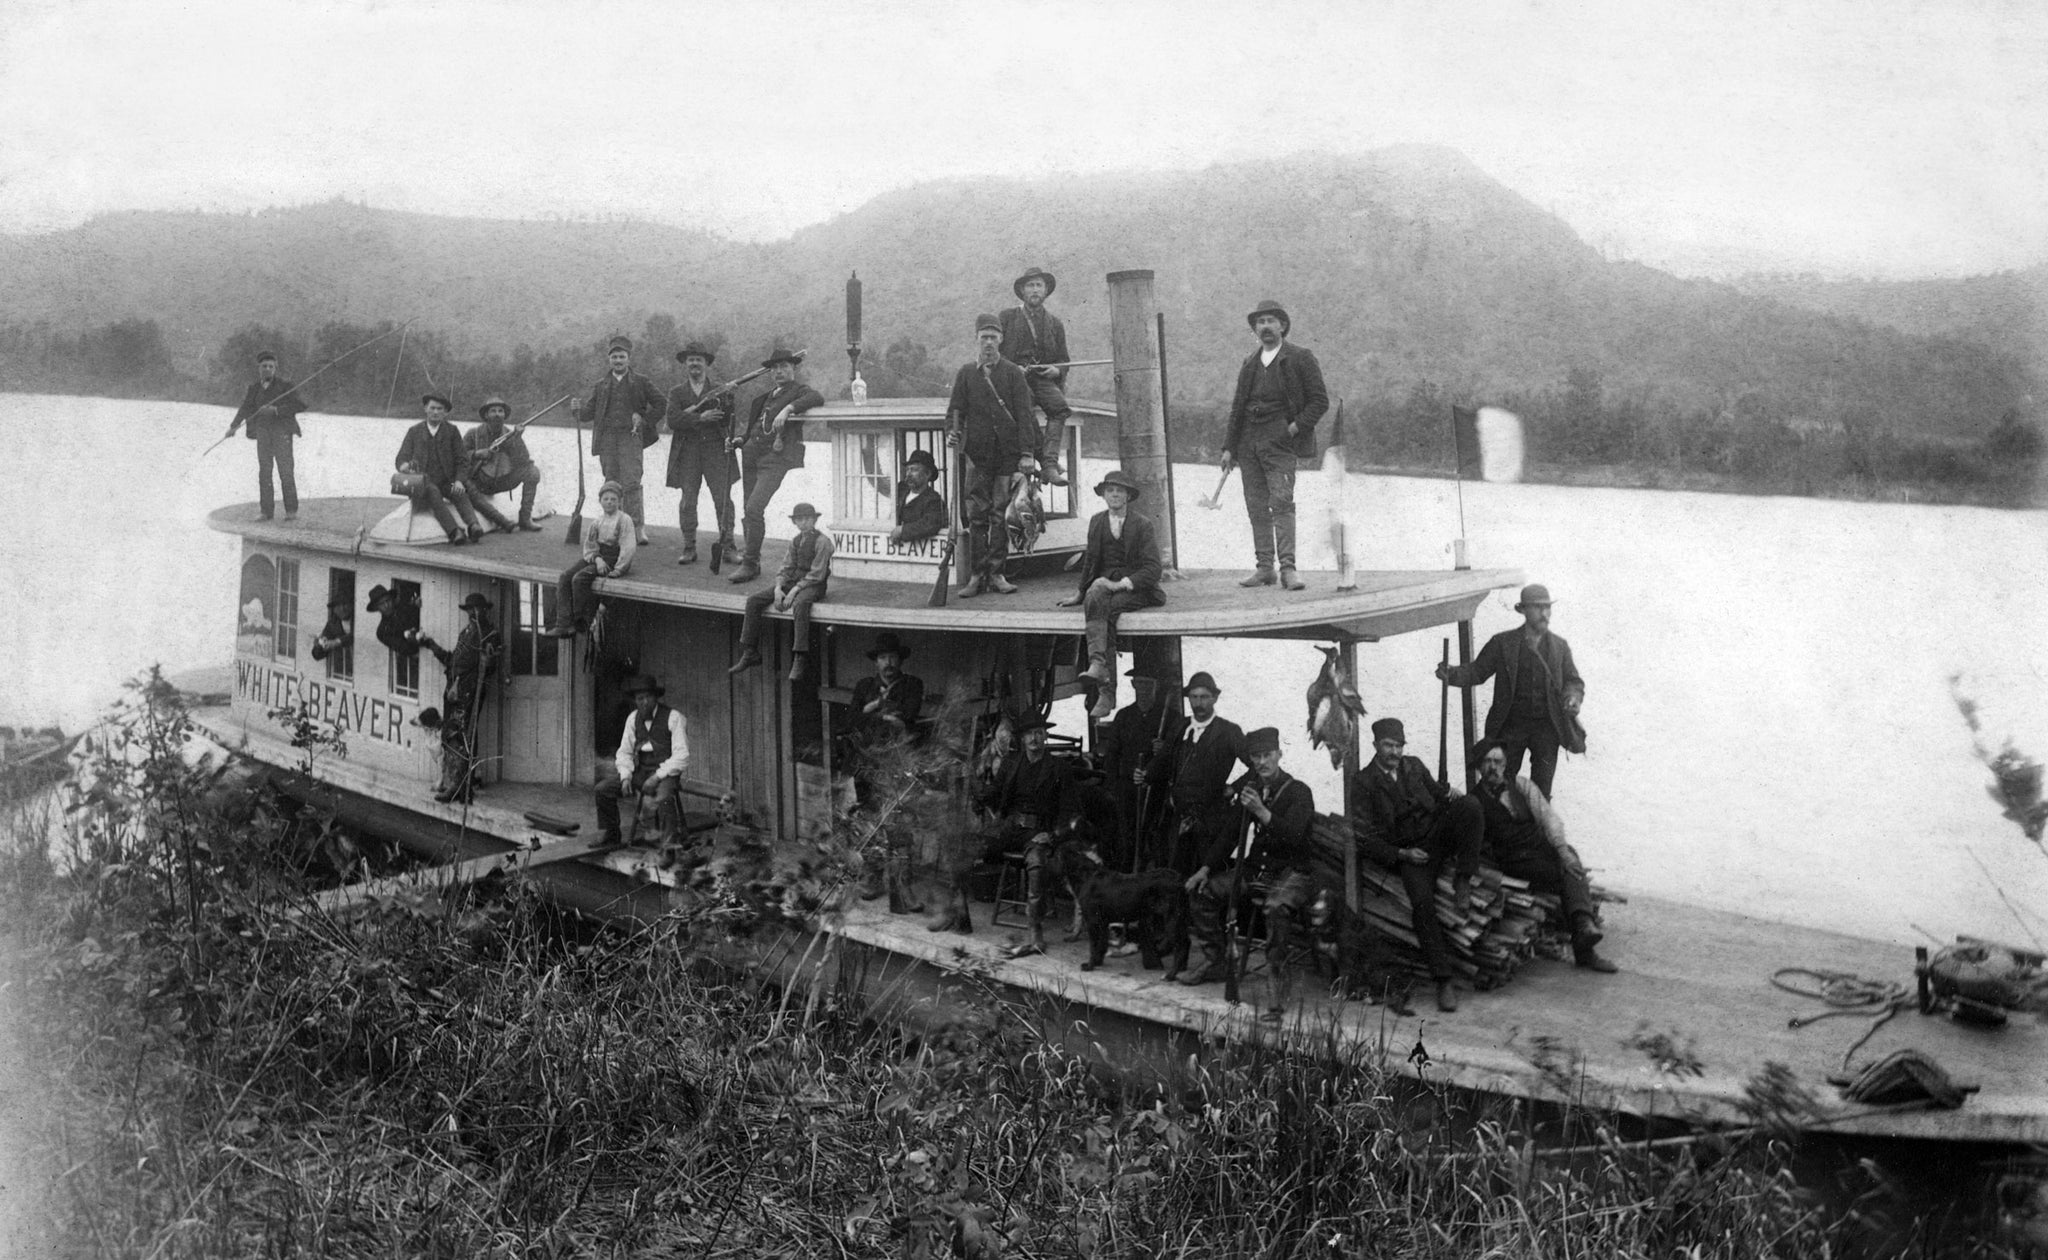 A hunting party on the steamboat White Beaver, circa 1900. The boat belonged to G. L. Winslow, who can be seen sitting on the wood pile. His son, E. M. Winslow, is on the left. -- COURTESY UNIVERSITY OF WISCONSIN-LA CROSSE / #17260